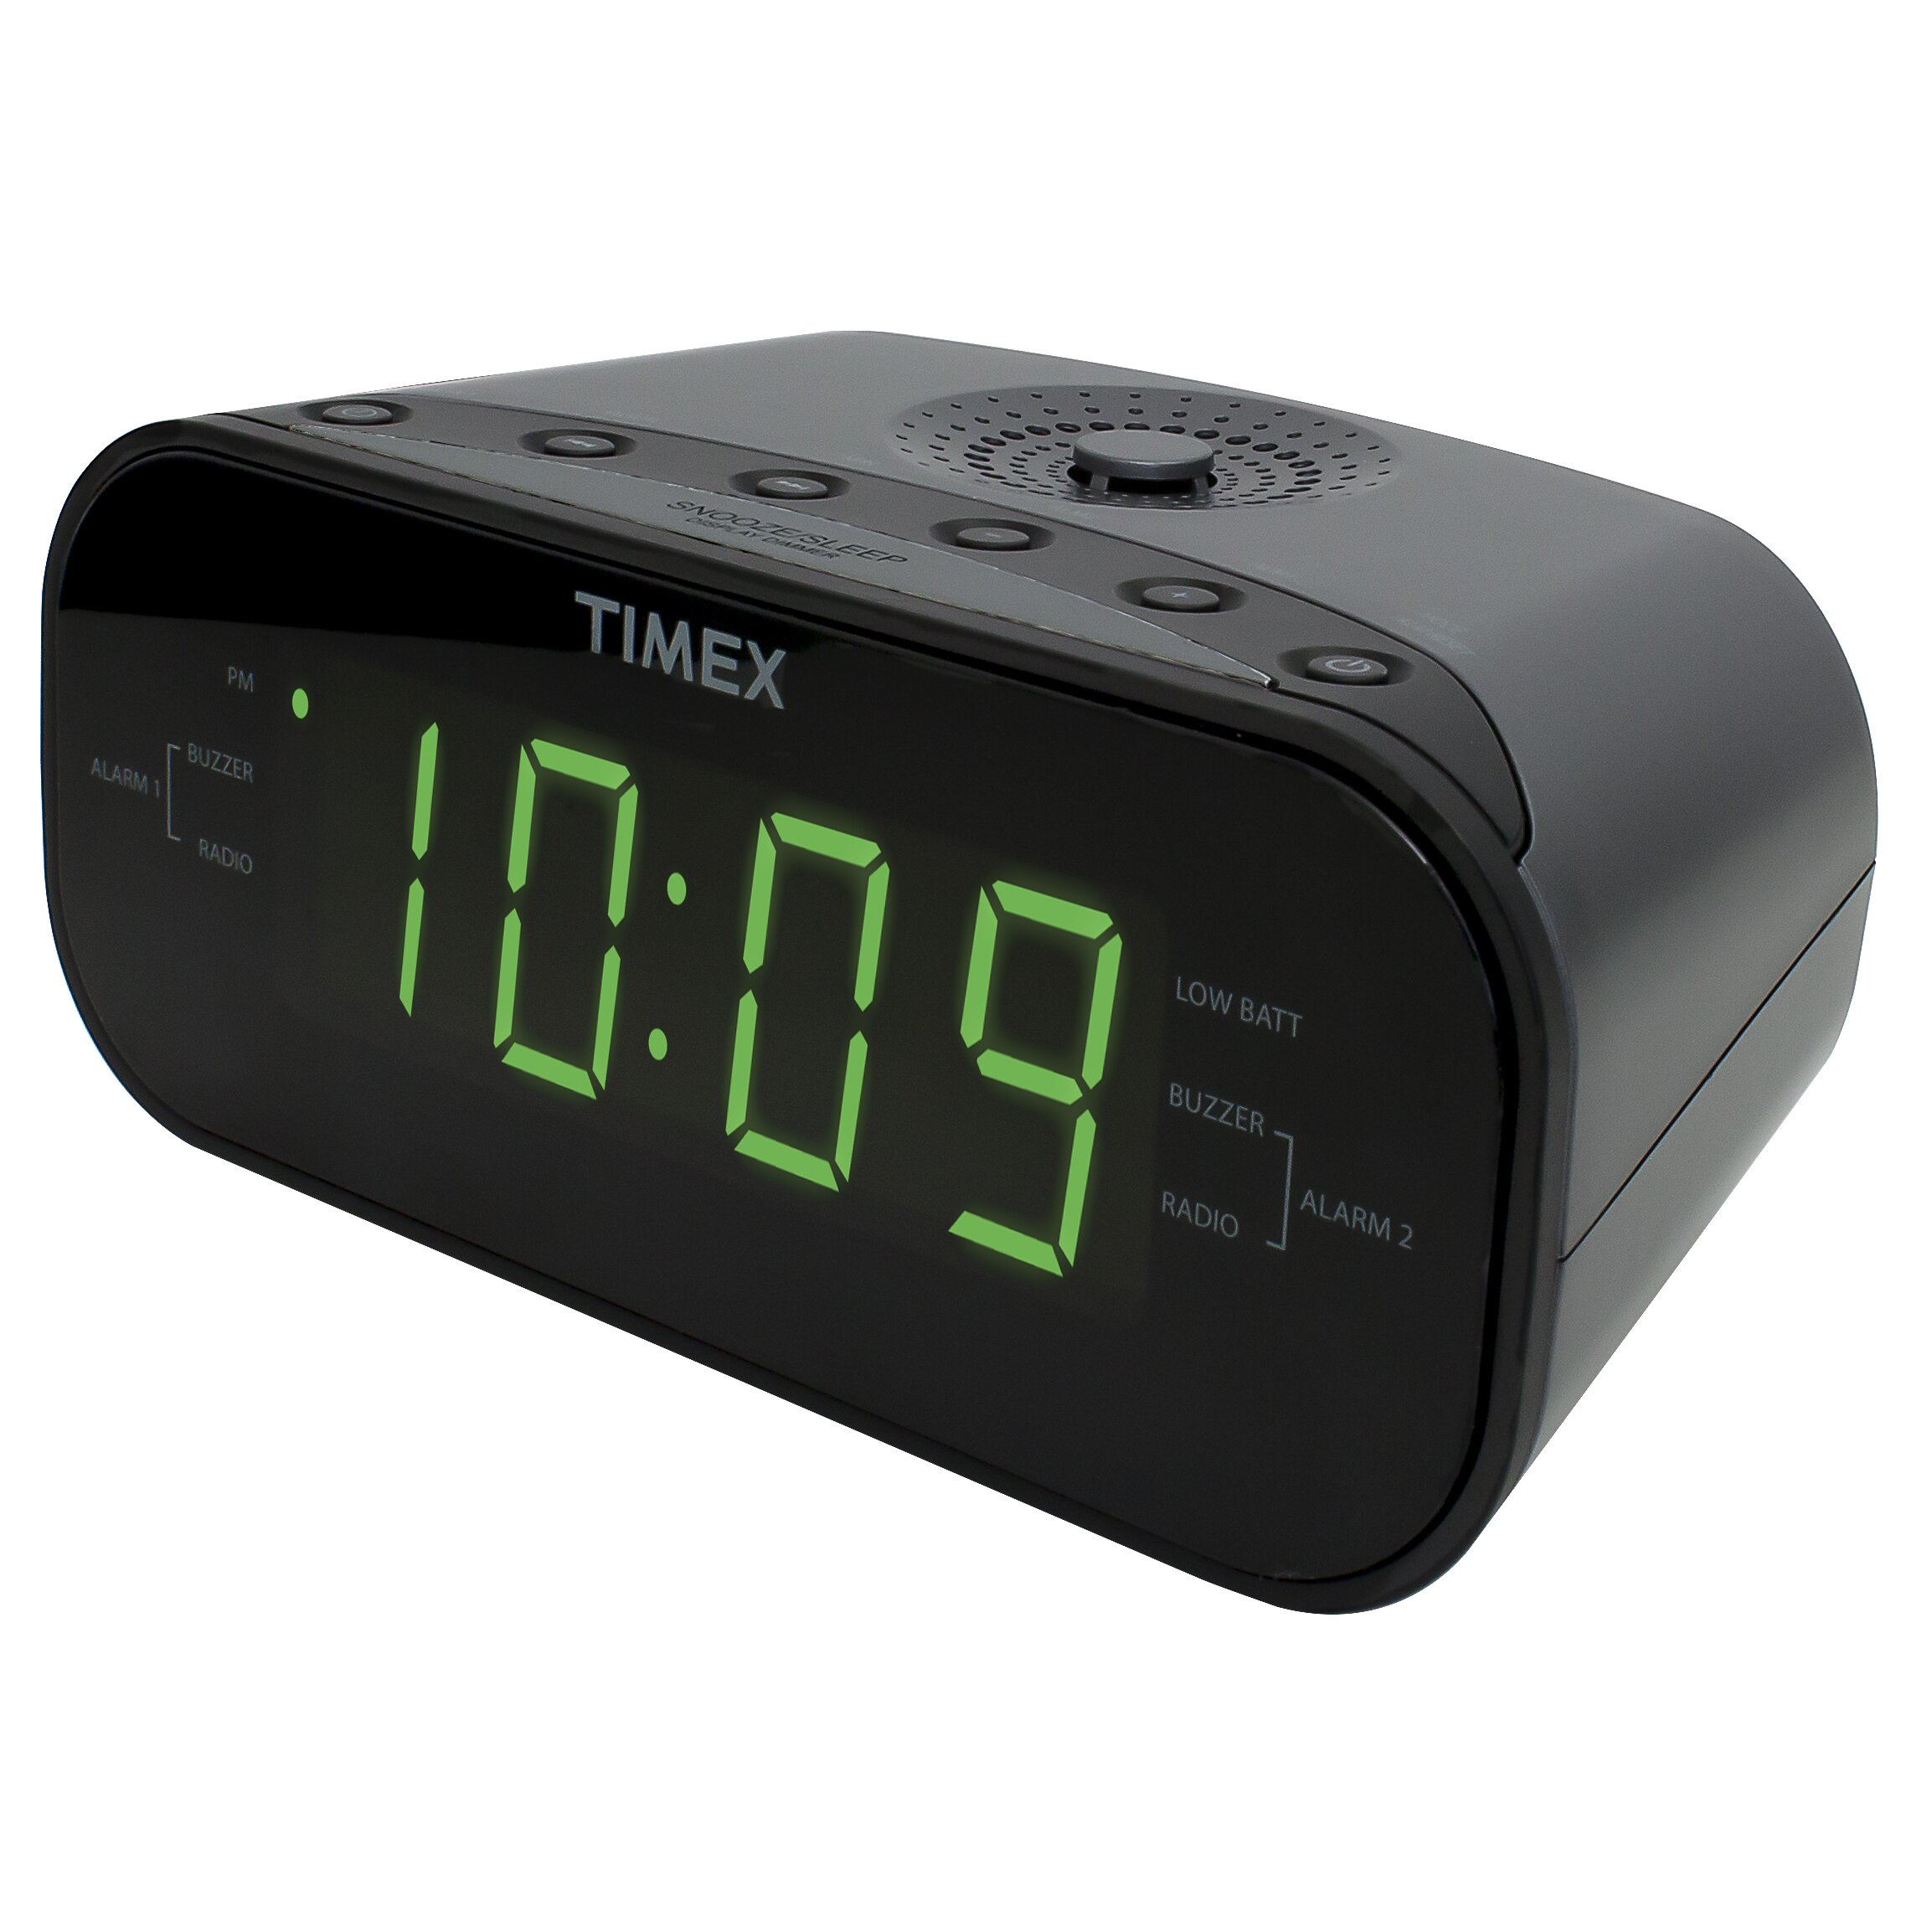 best alarm clocks best digital led alarm clock kids to buy buy latest bedroom clocks bedroom and living room image collections with best alarm clocks